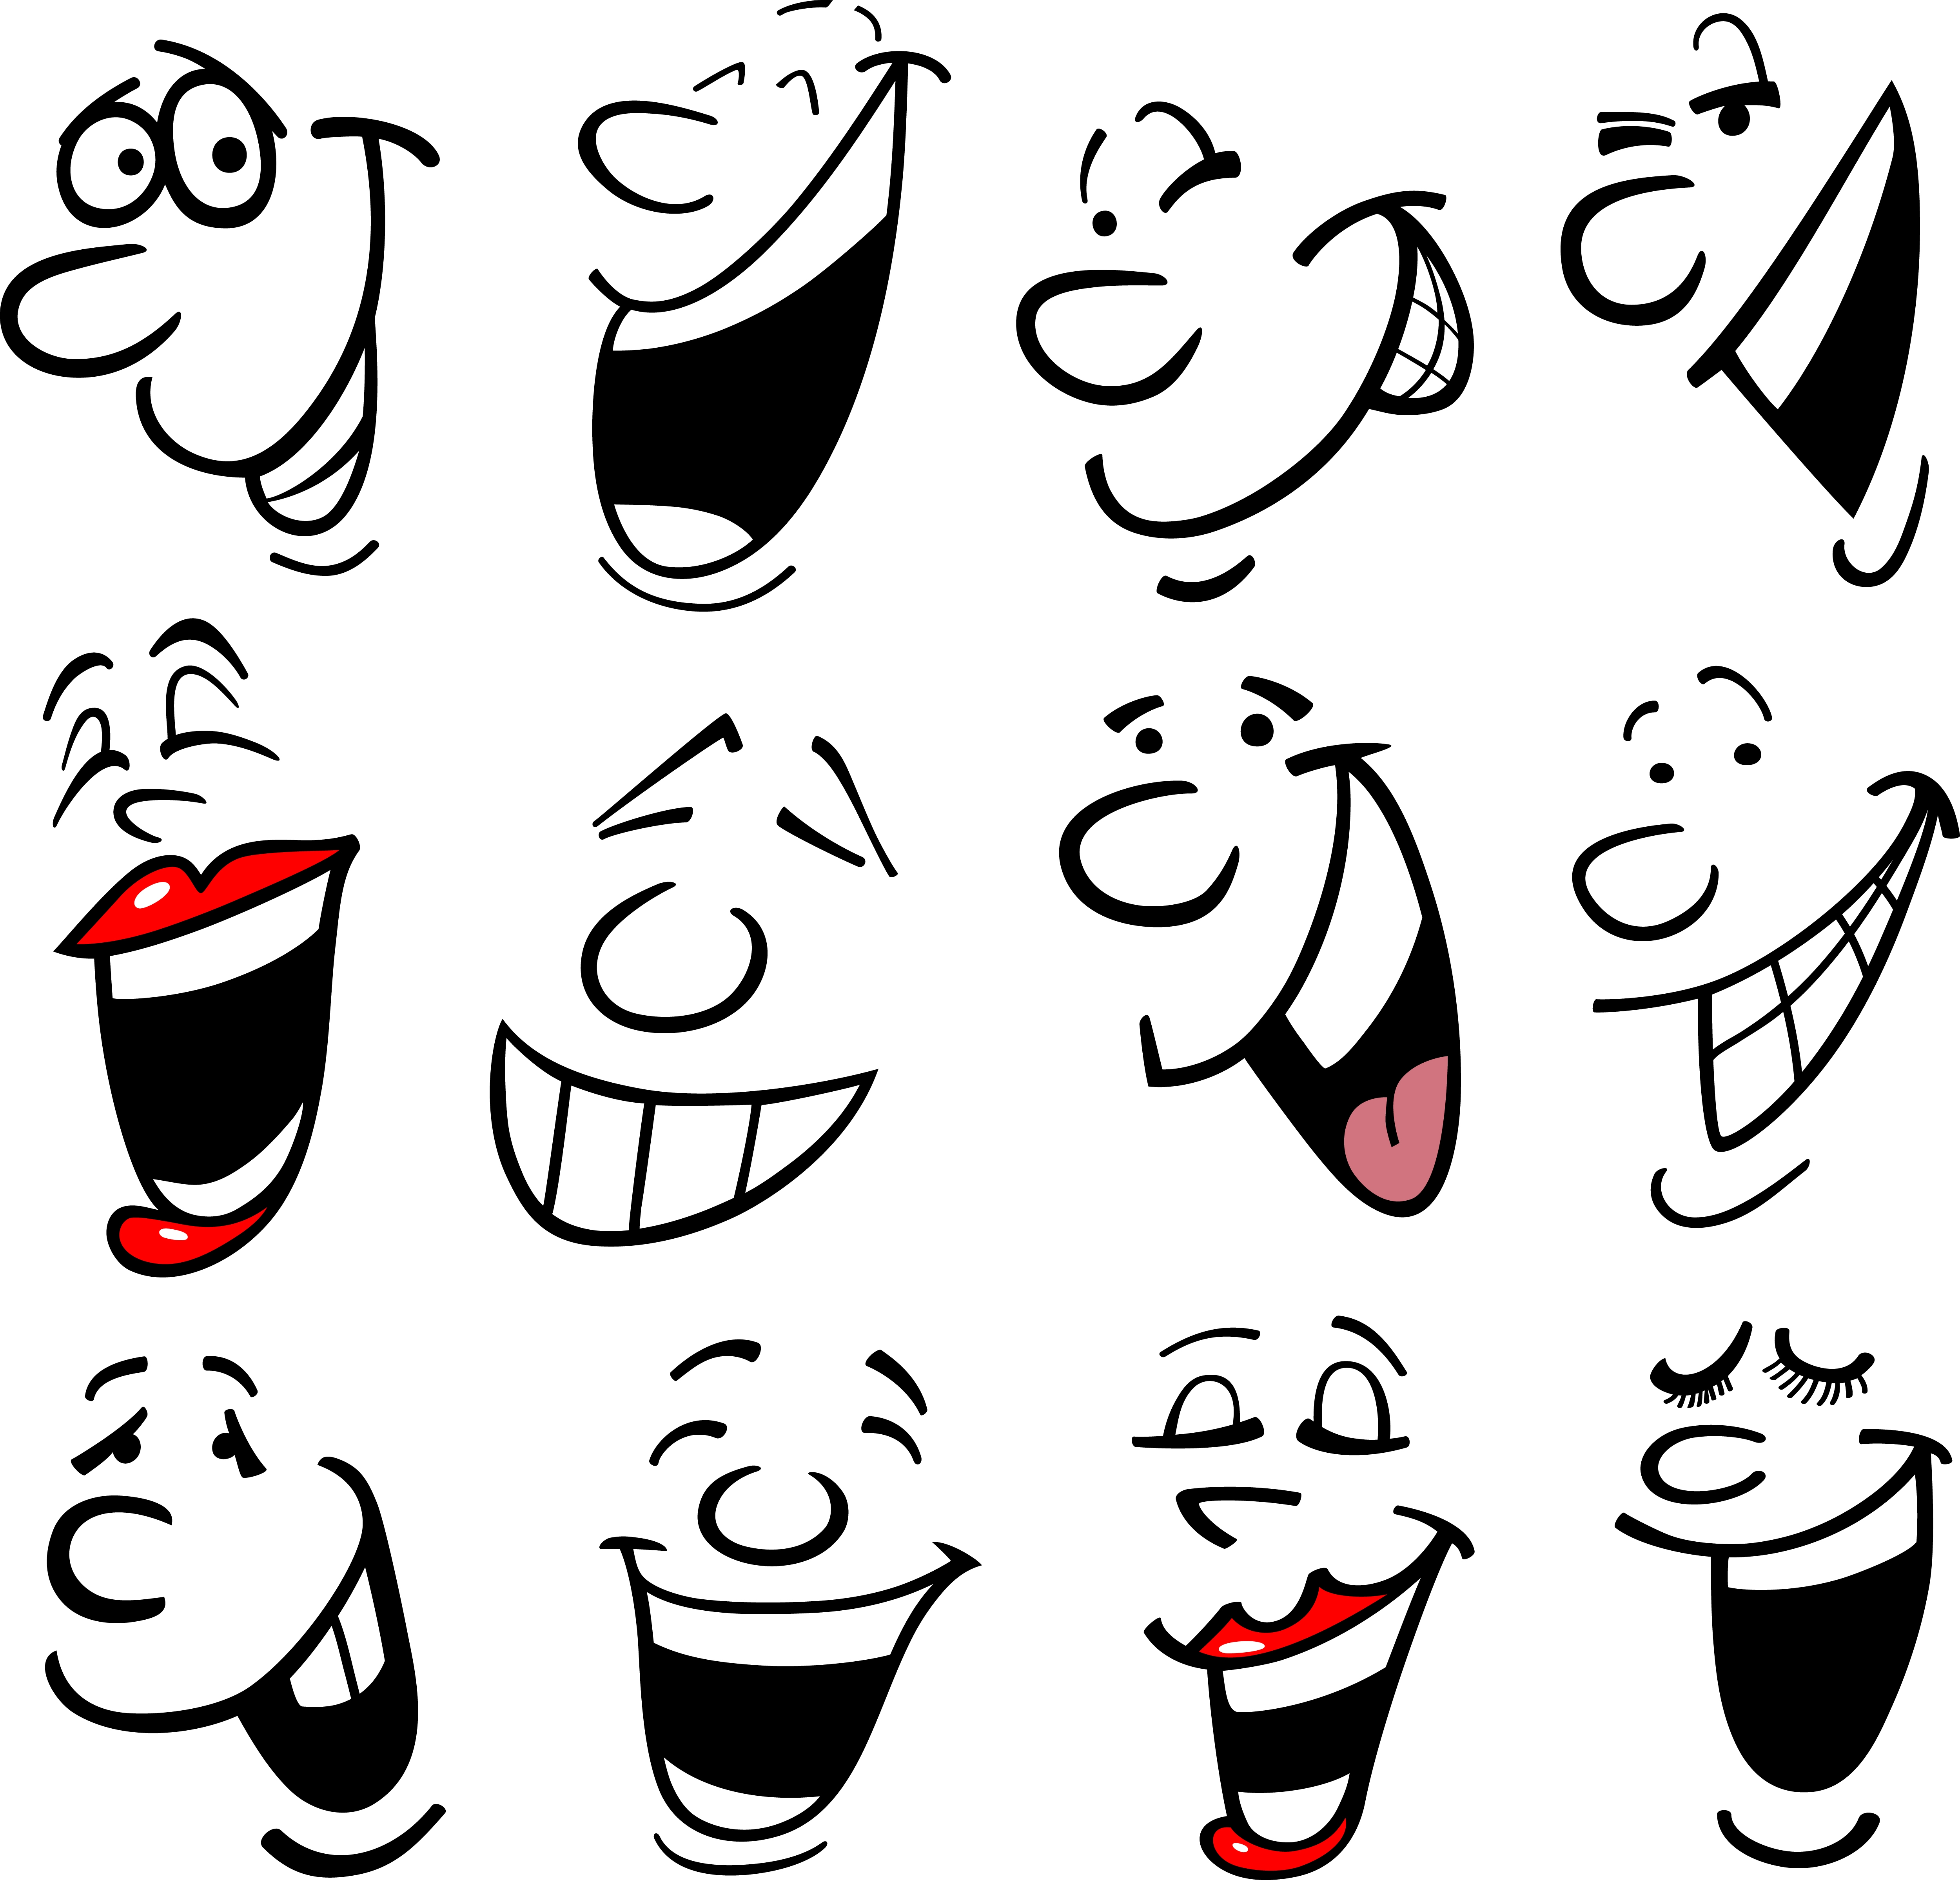 laughing faces cartoon - photo #23